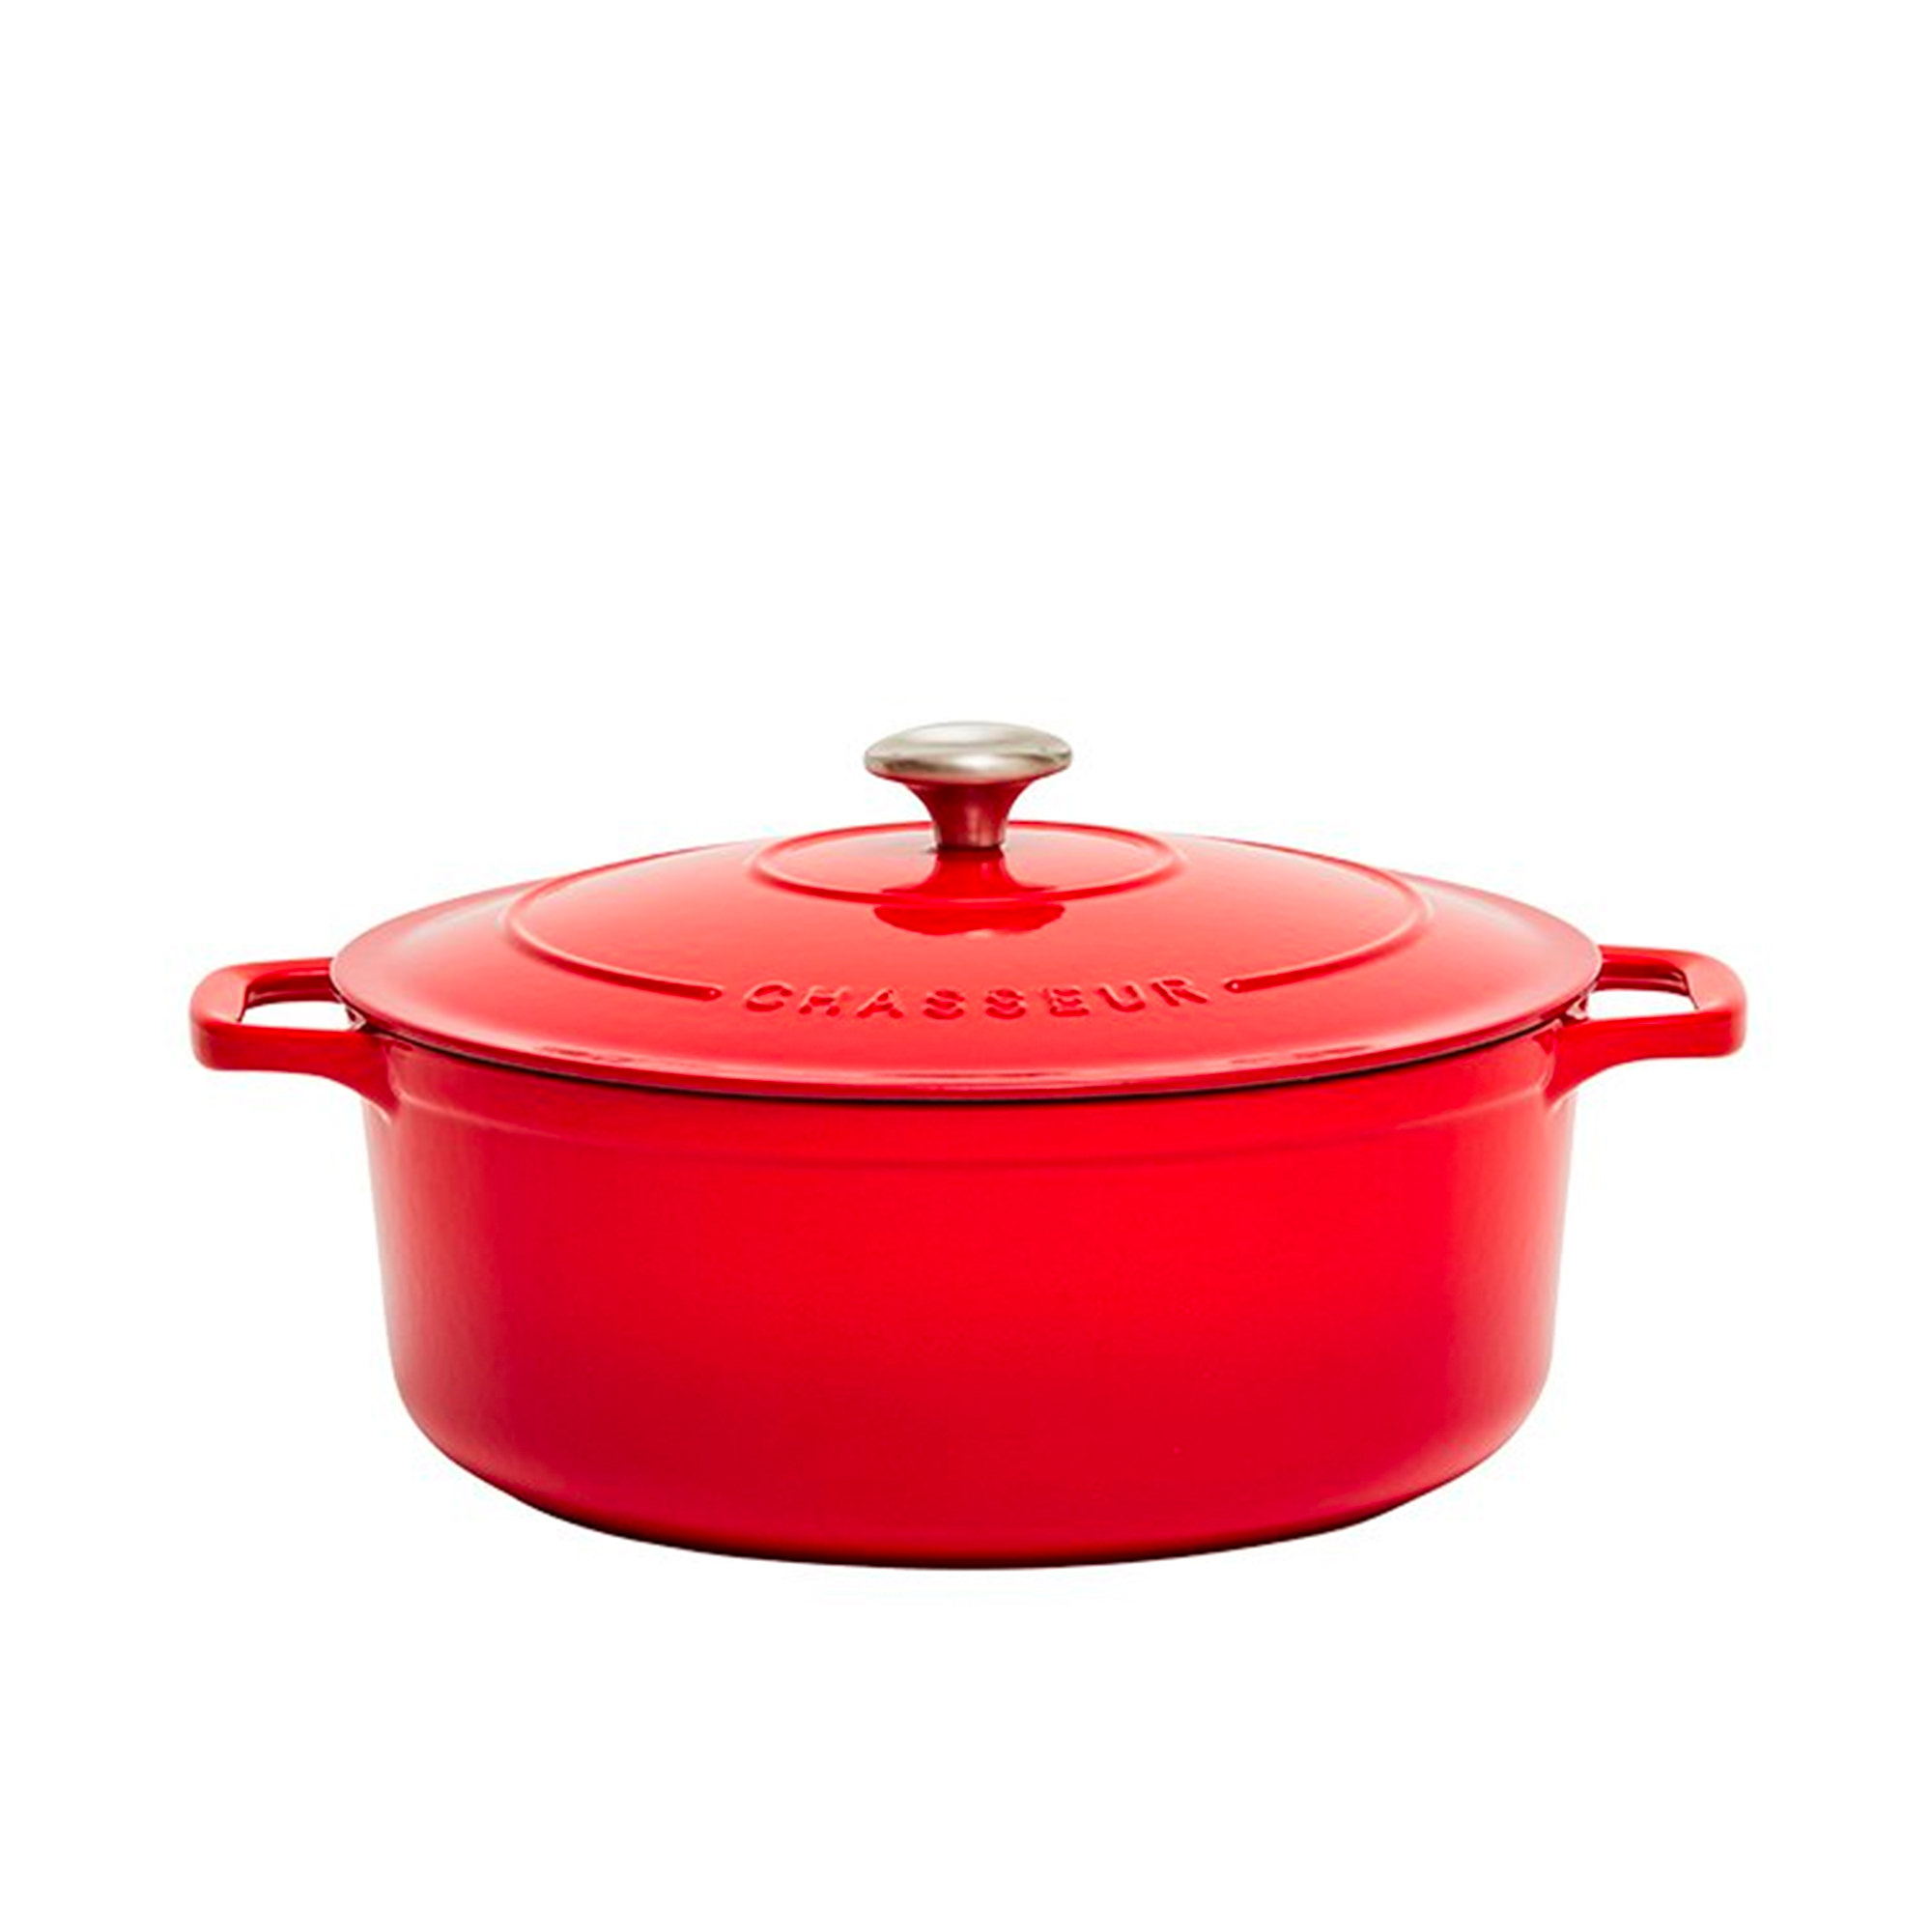 Chasseur Round French Oven 28cm - 6.1L Chilli Red